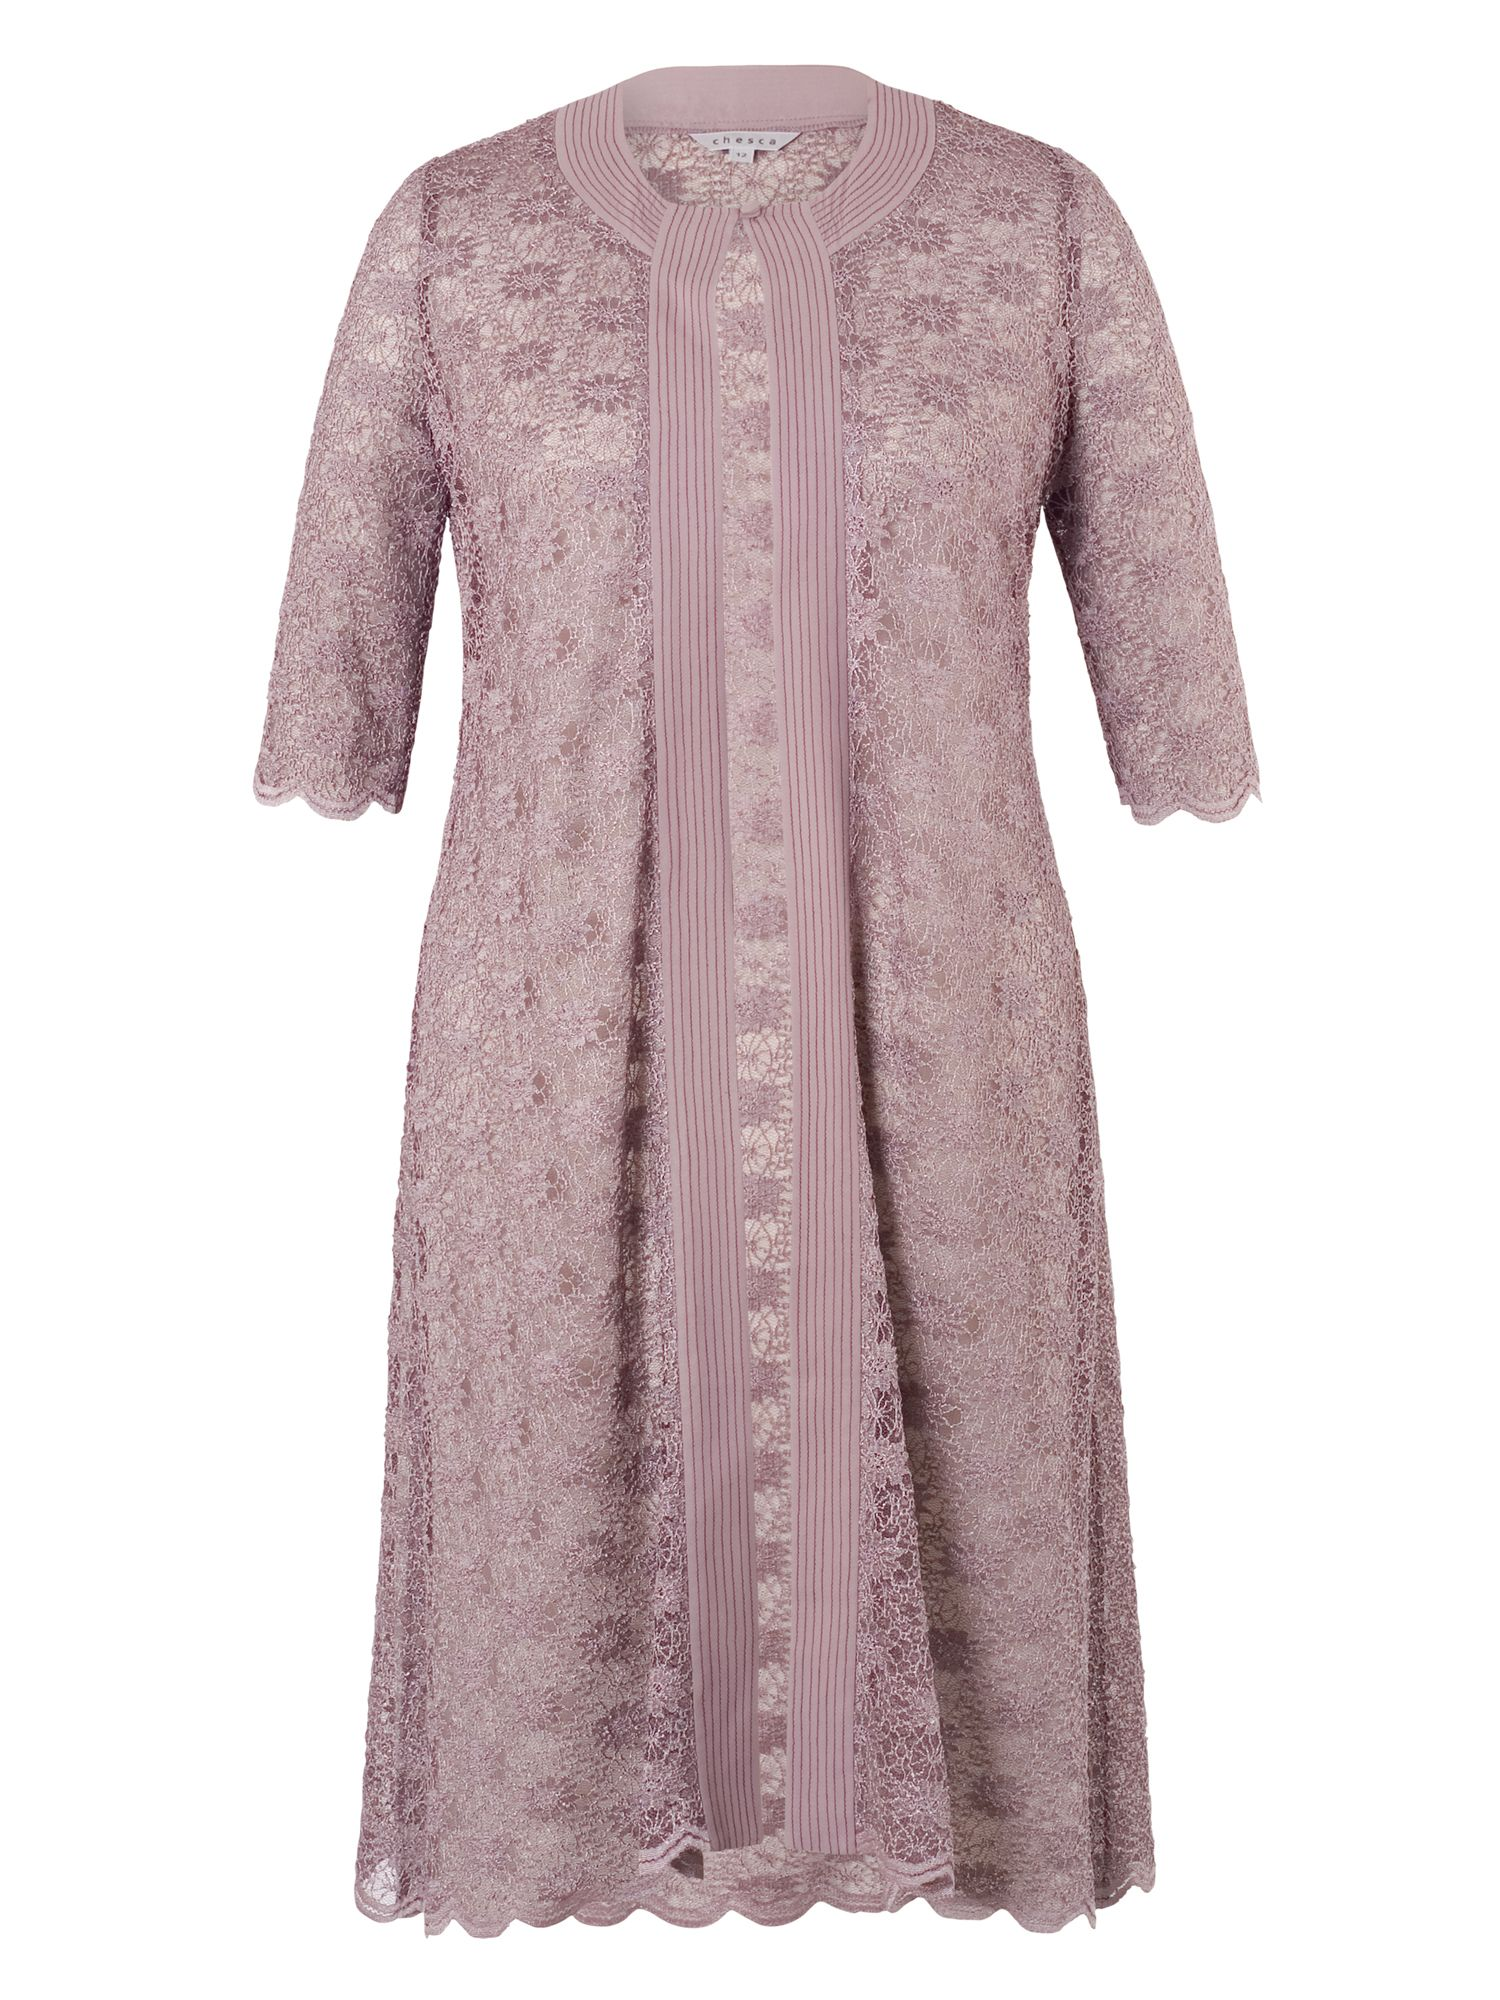 Chesca Scallop Lace Coat, Lavender